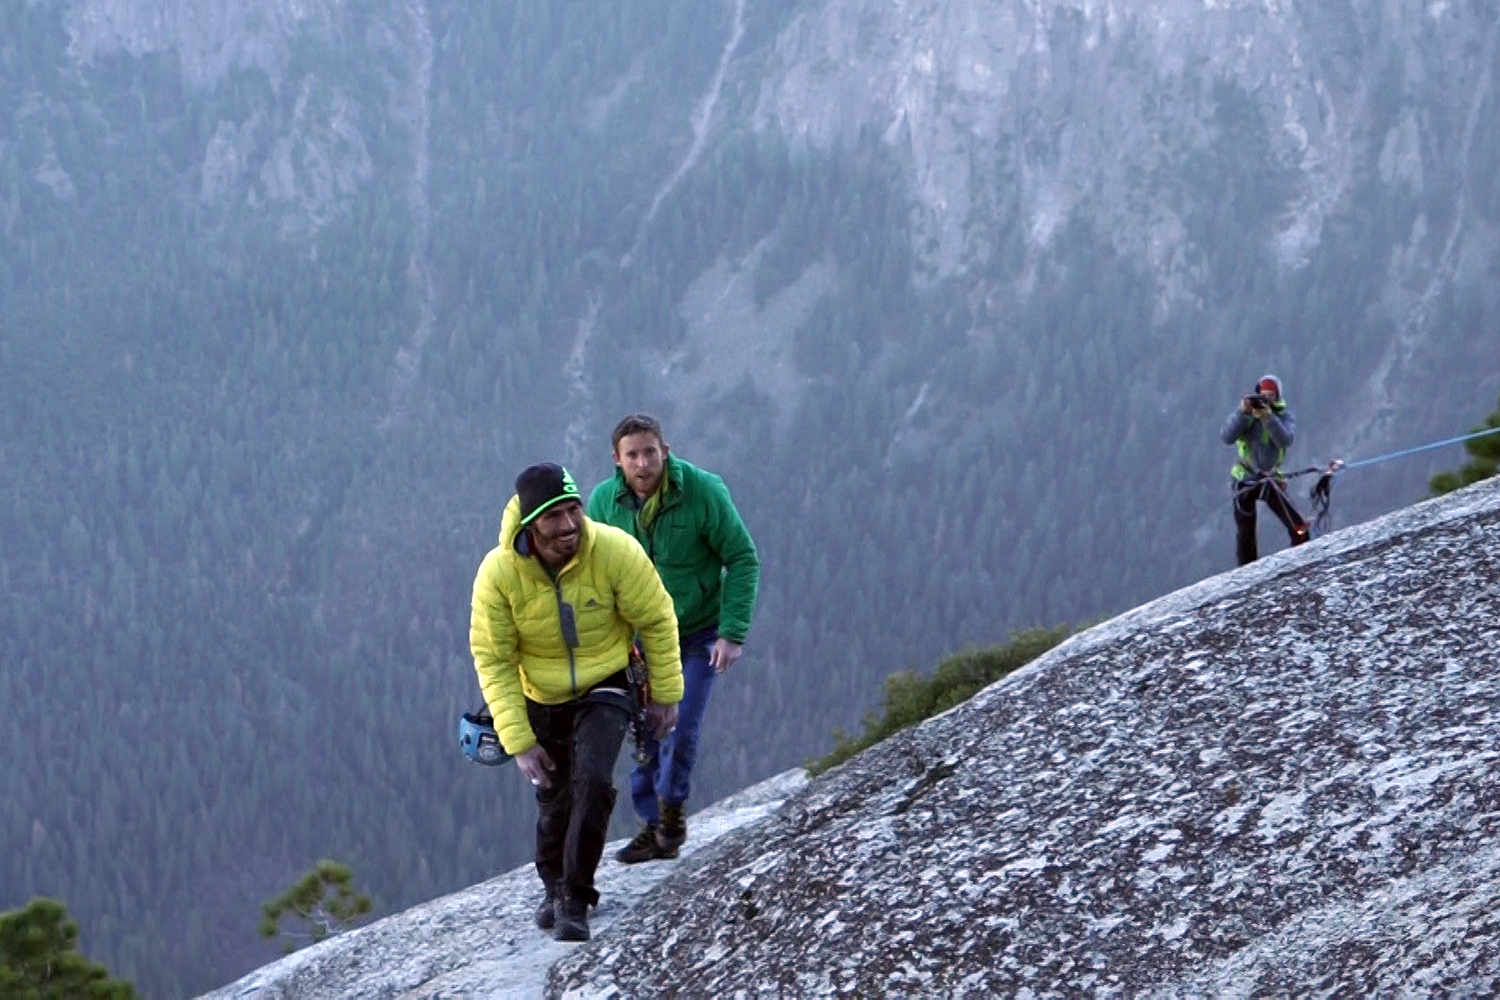 Kevin Jorgeson (in yellow) and Tommy Caldwell (in green) hiking up the summit towards the crowd.